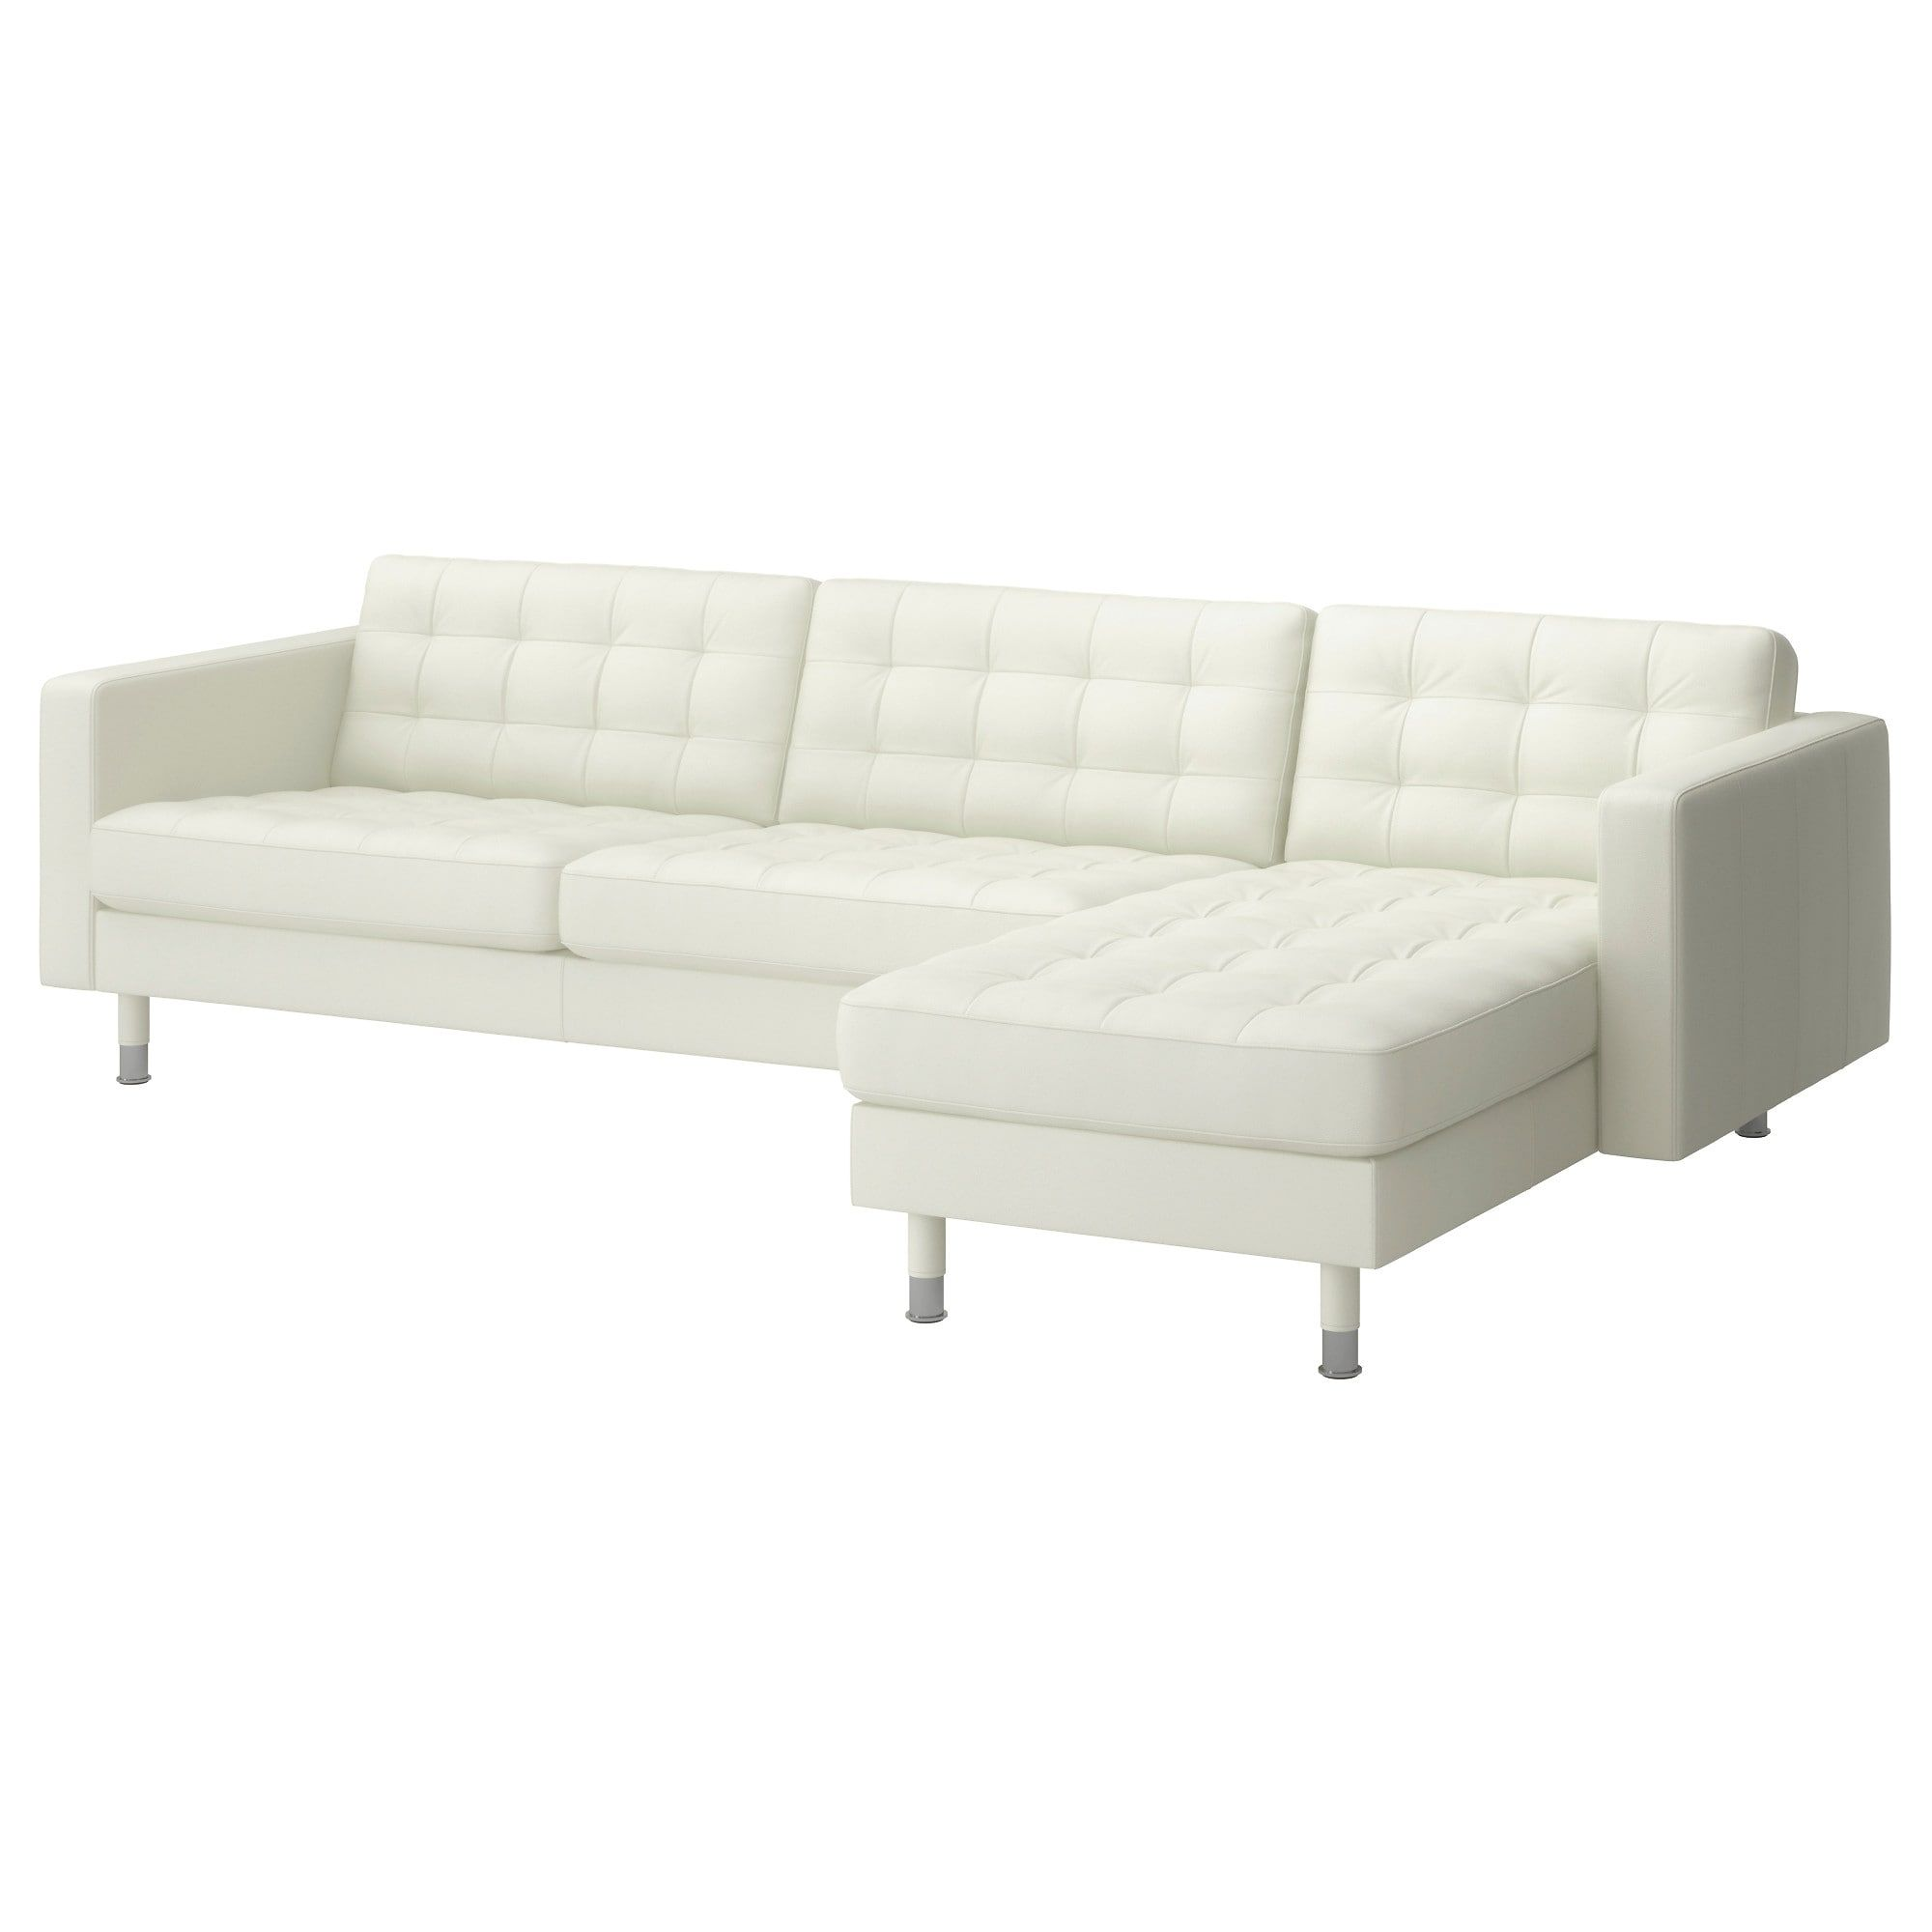 Landskrona Sectional 4 Seat With Chaise Grann Bomstad Grann Bomstad White Metal With Images White Leather Sofas White Leather Couch Landskrona Sofa